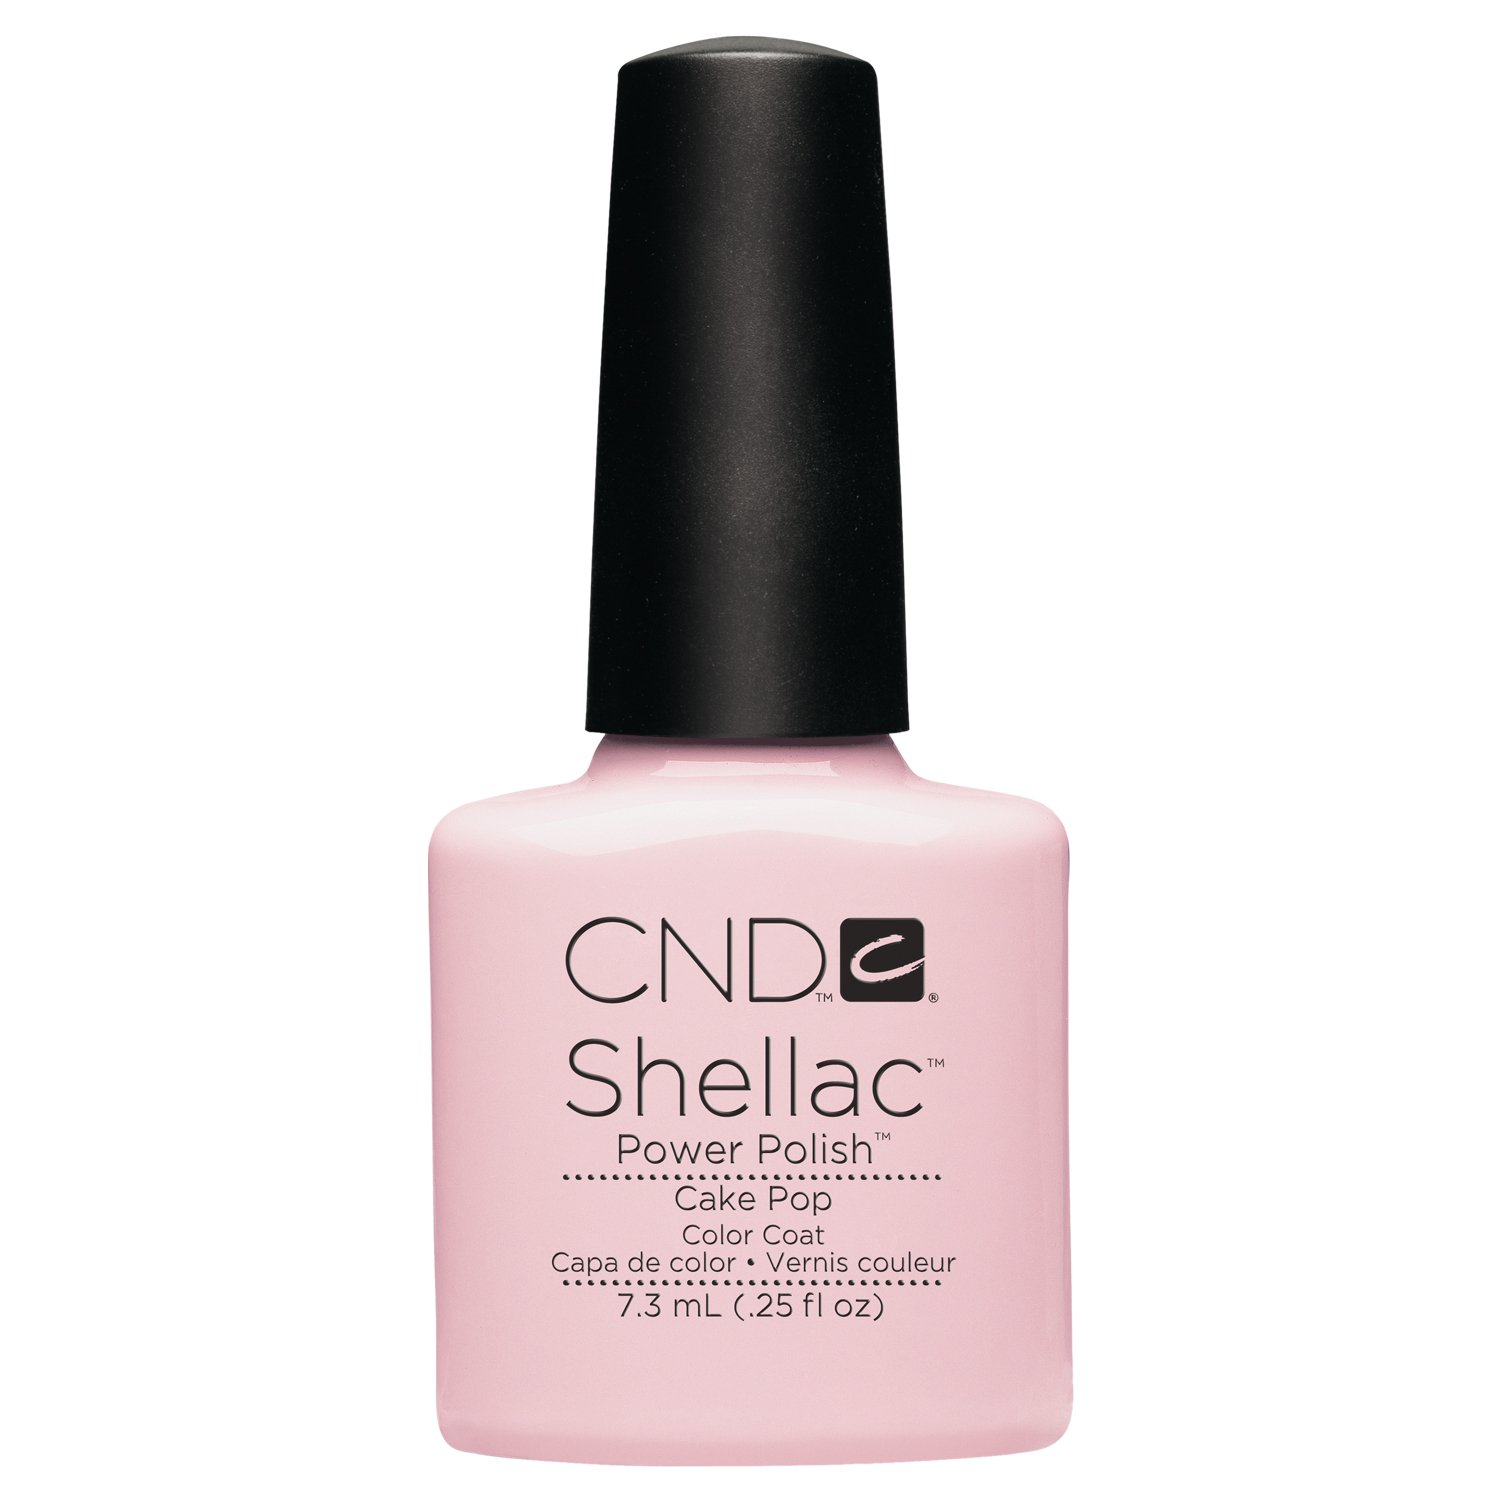 Who made the shellac is it true that after his nails are in terrible condition 58